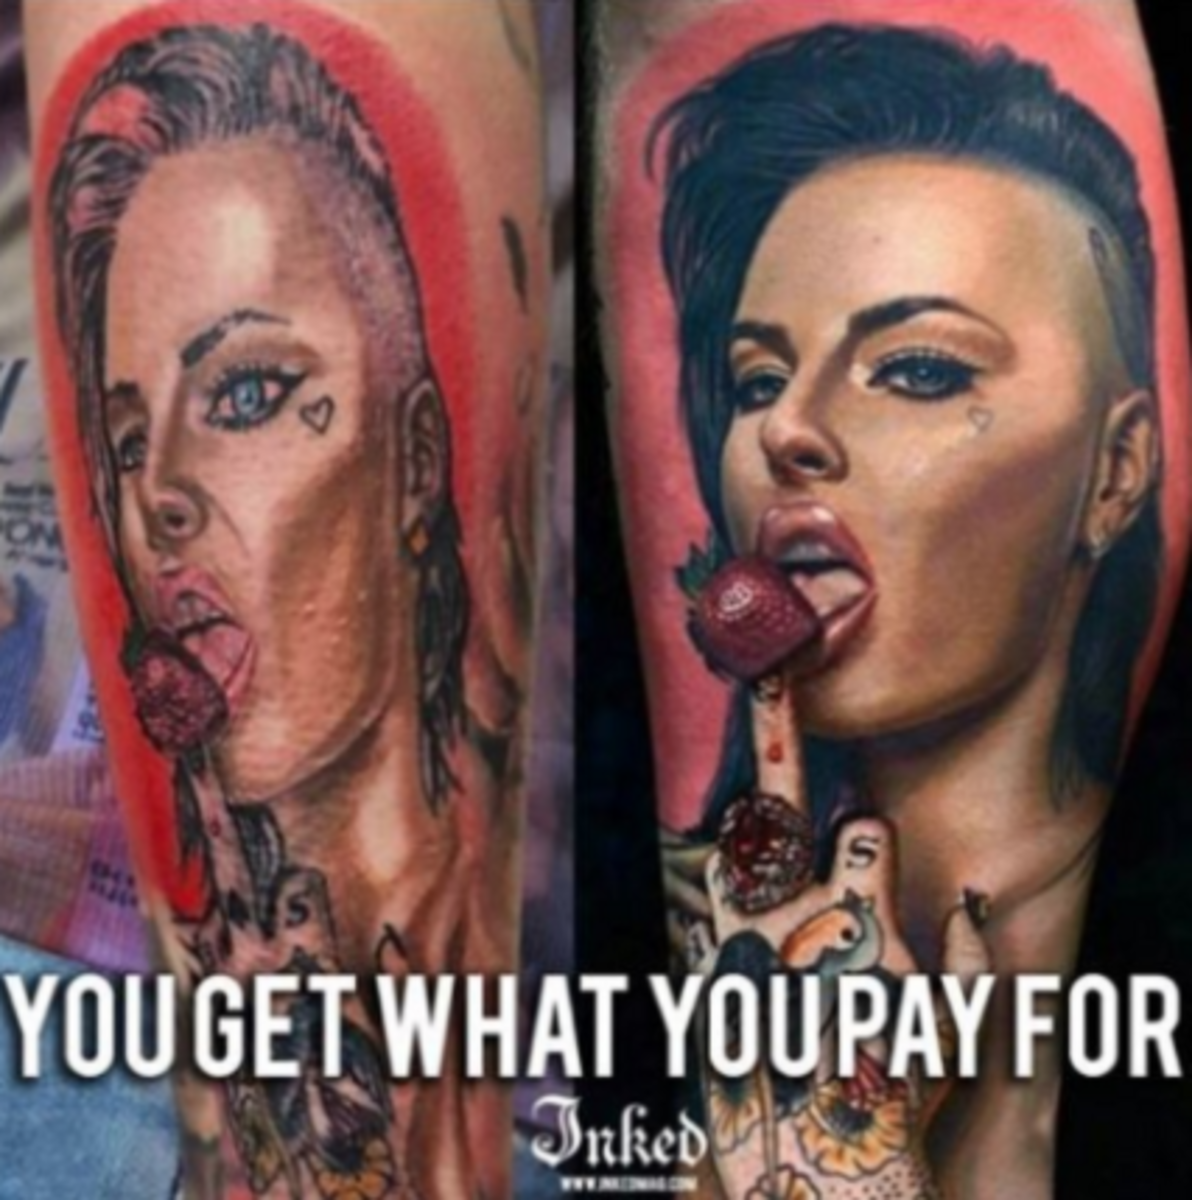 really bad tattoo compared to good one